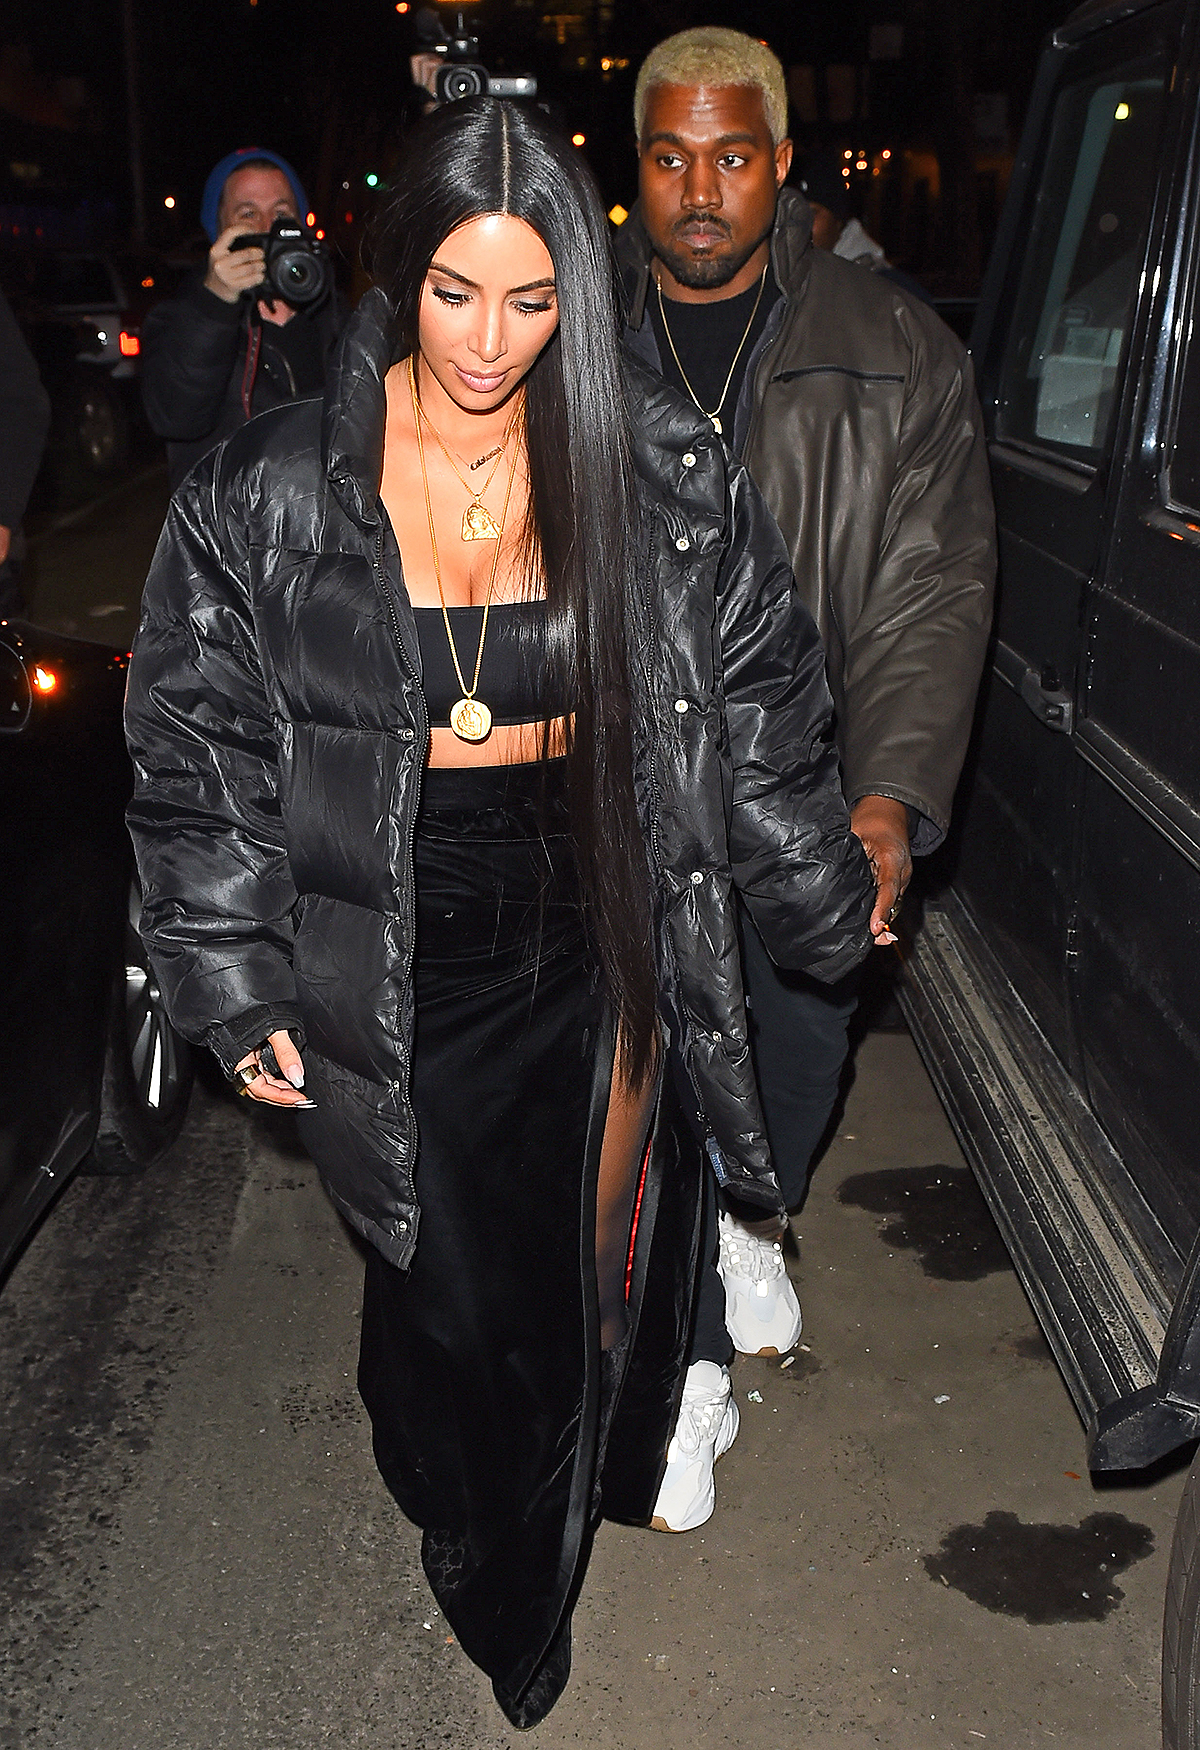 Kim Kardashian & Kanye West are seen dining at Cabone restaurant in New York for a Valentines day meal.